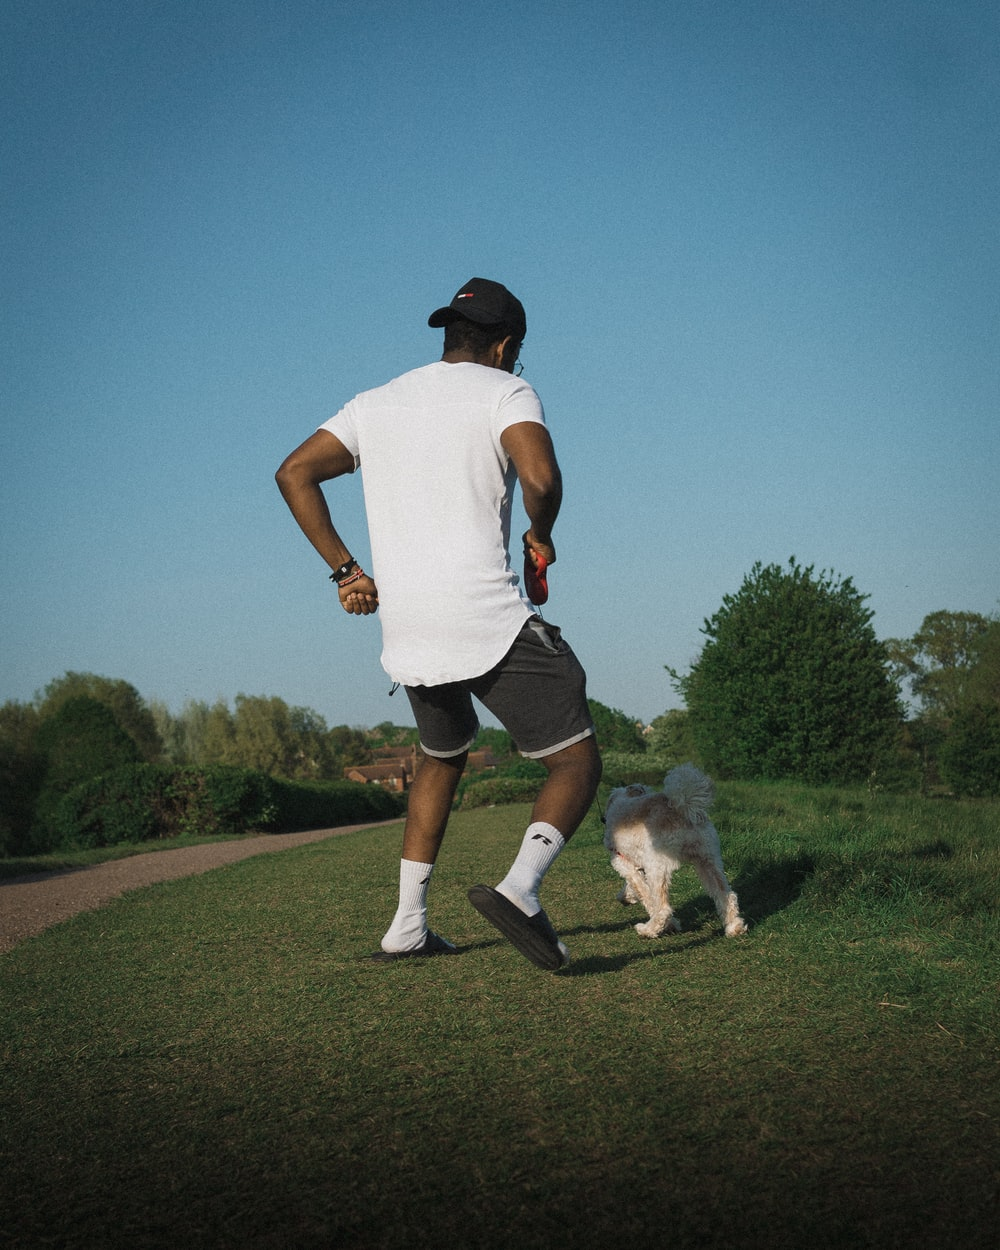 man in white t-shirt and black shorts running on green grass field during daytime